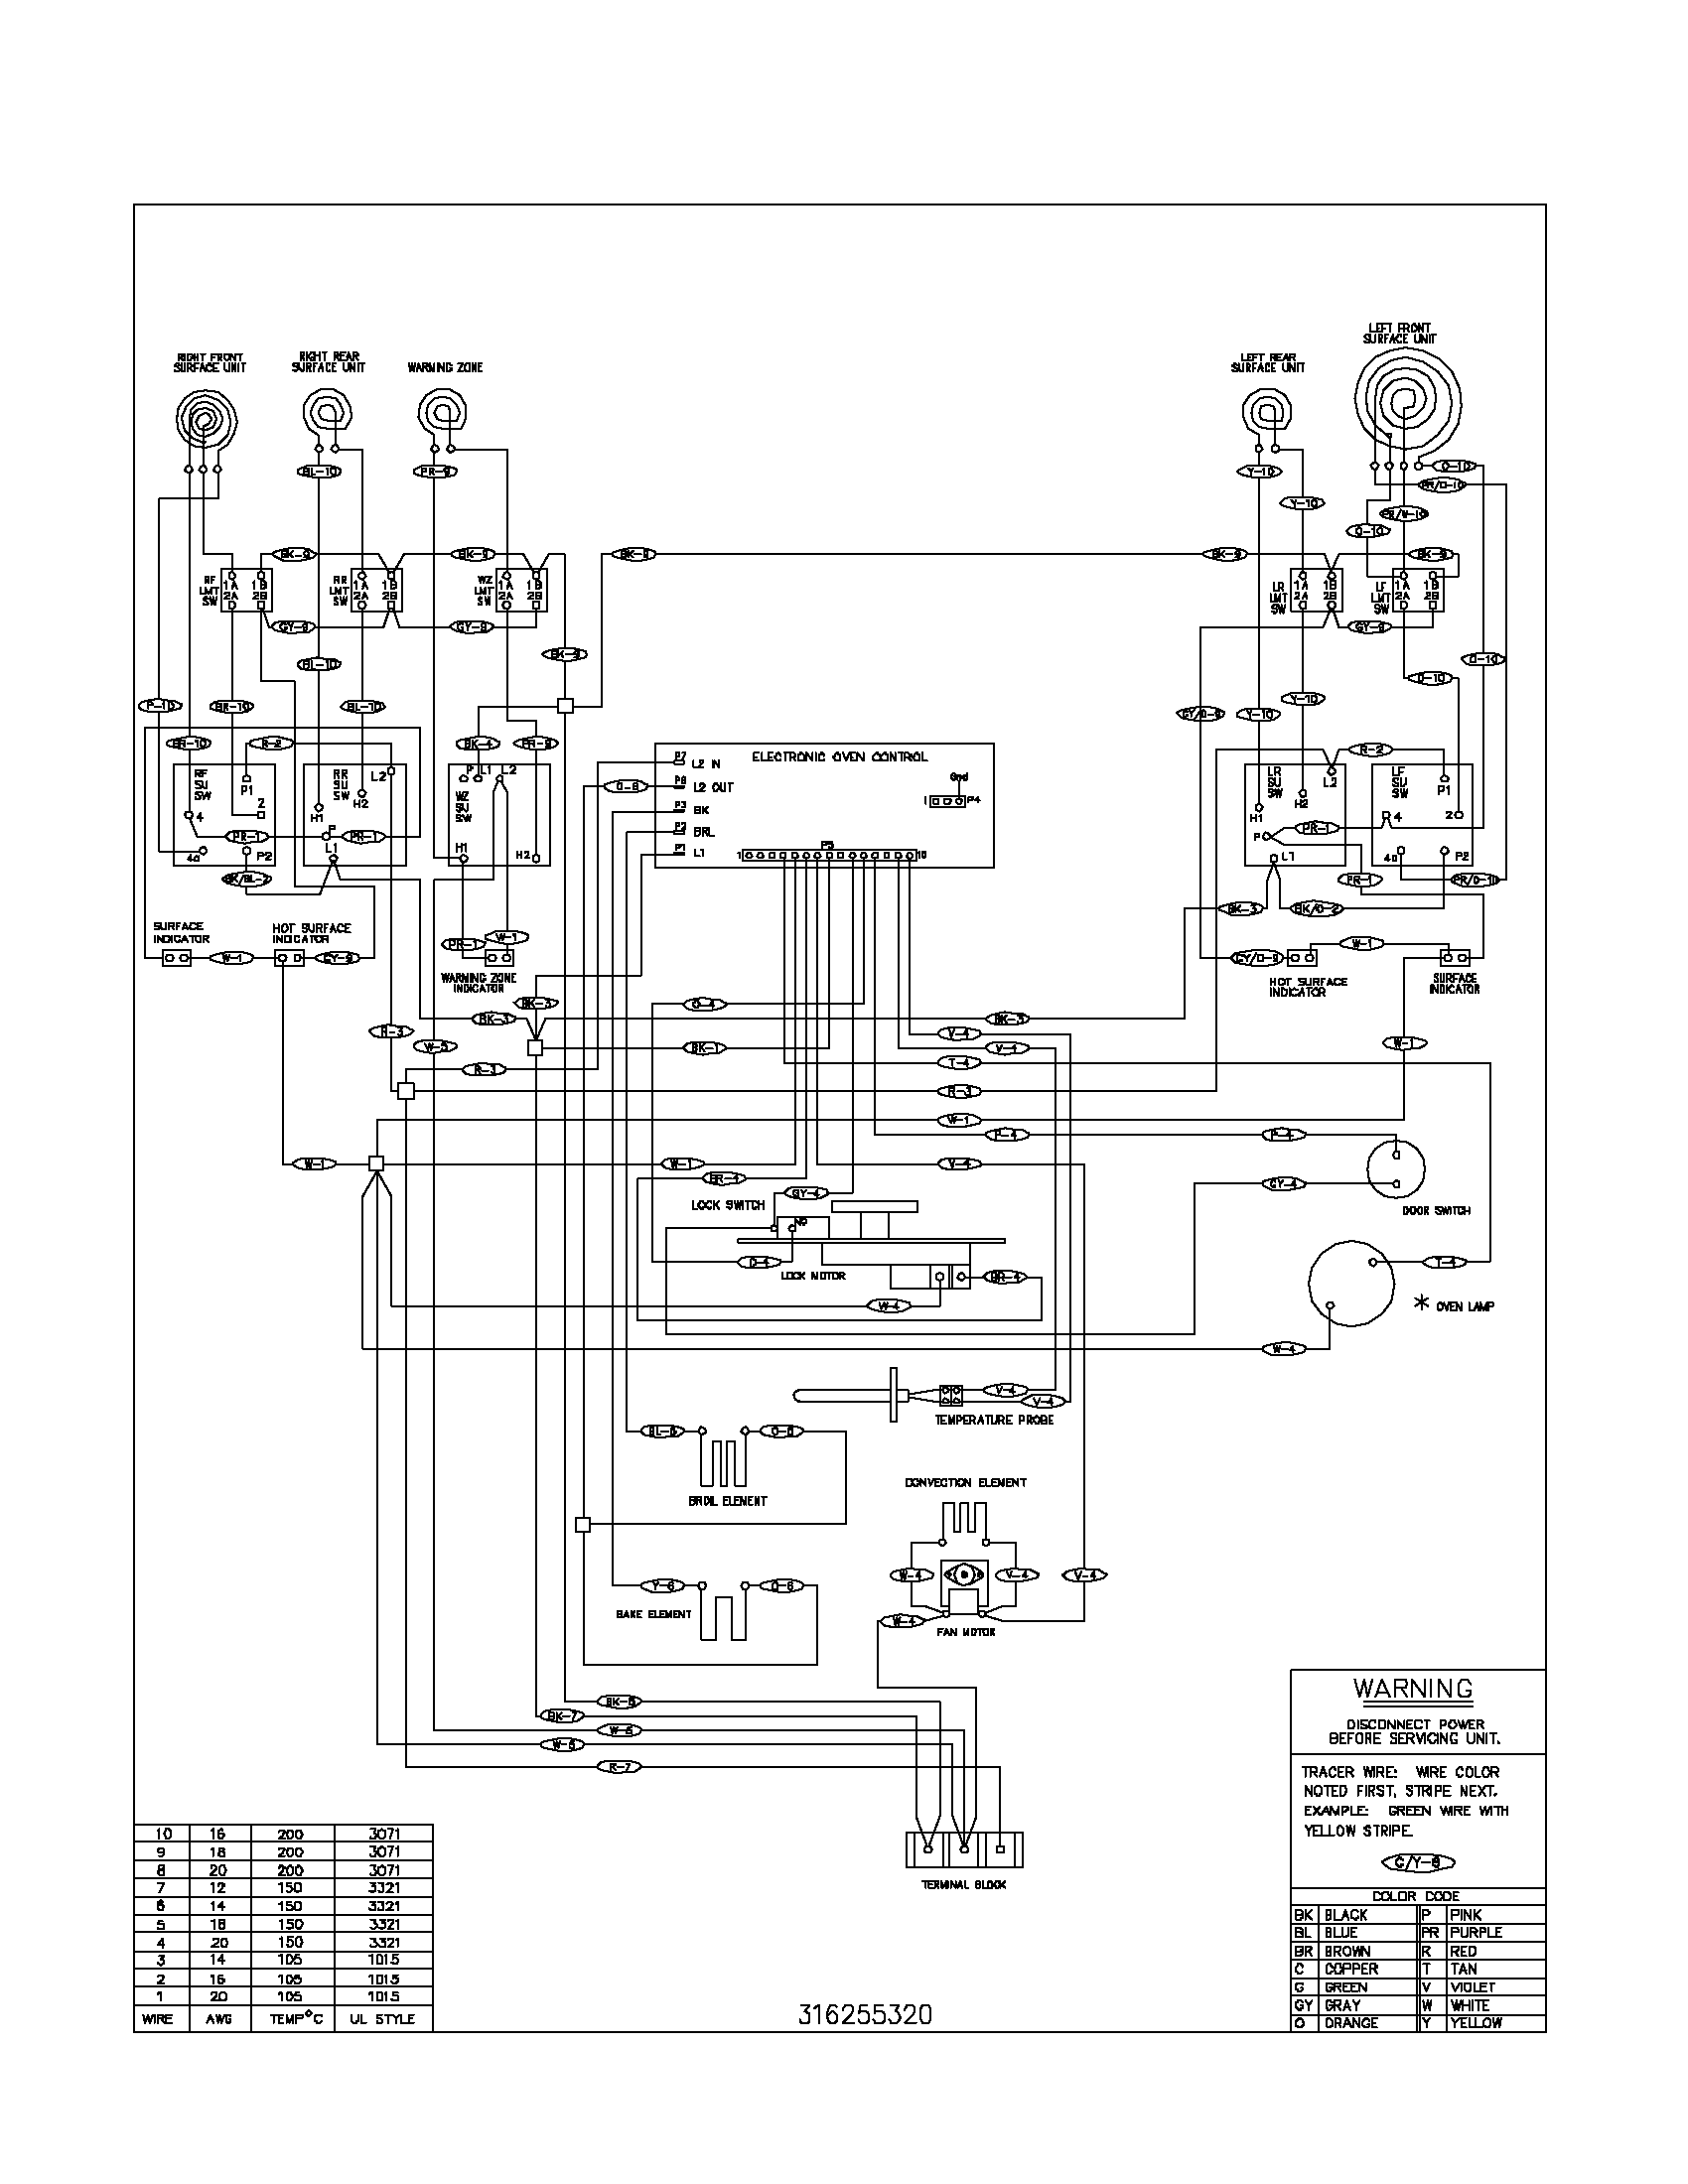 ge dishwasher wiring diagram wiring diagram and schematic design ge wd15x93 dishwasher water inlet valve liancepartspros